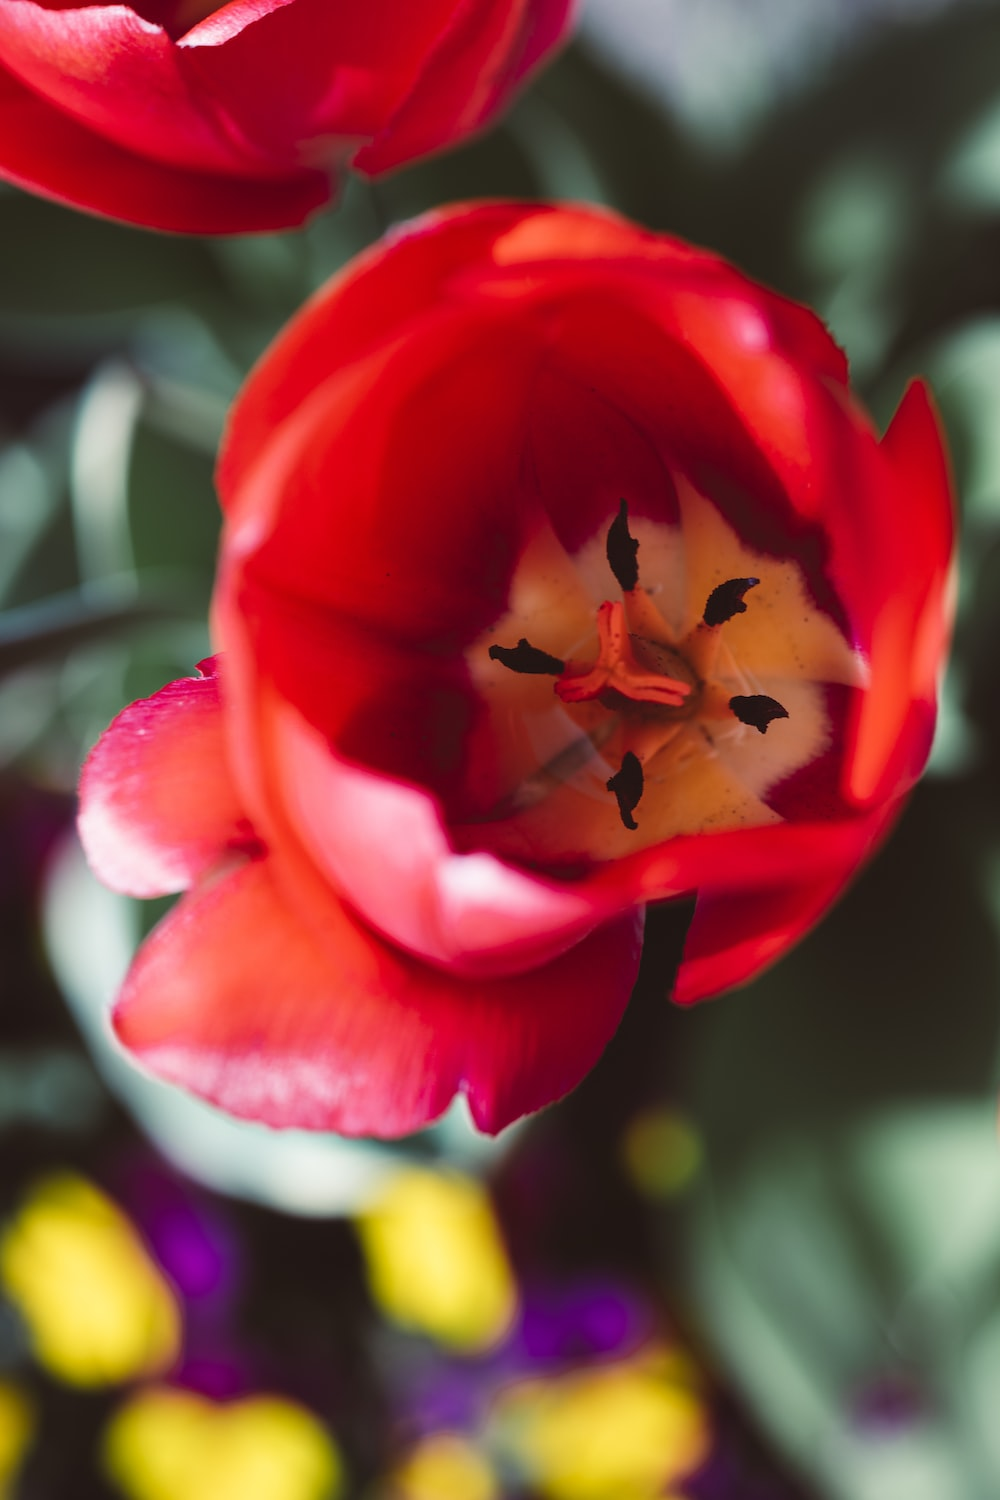 red and white flower in close up photography